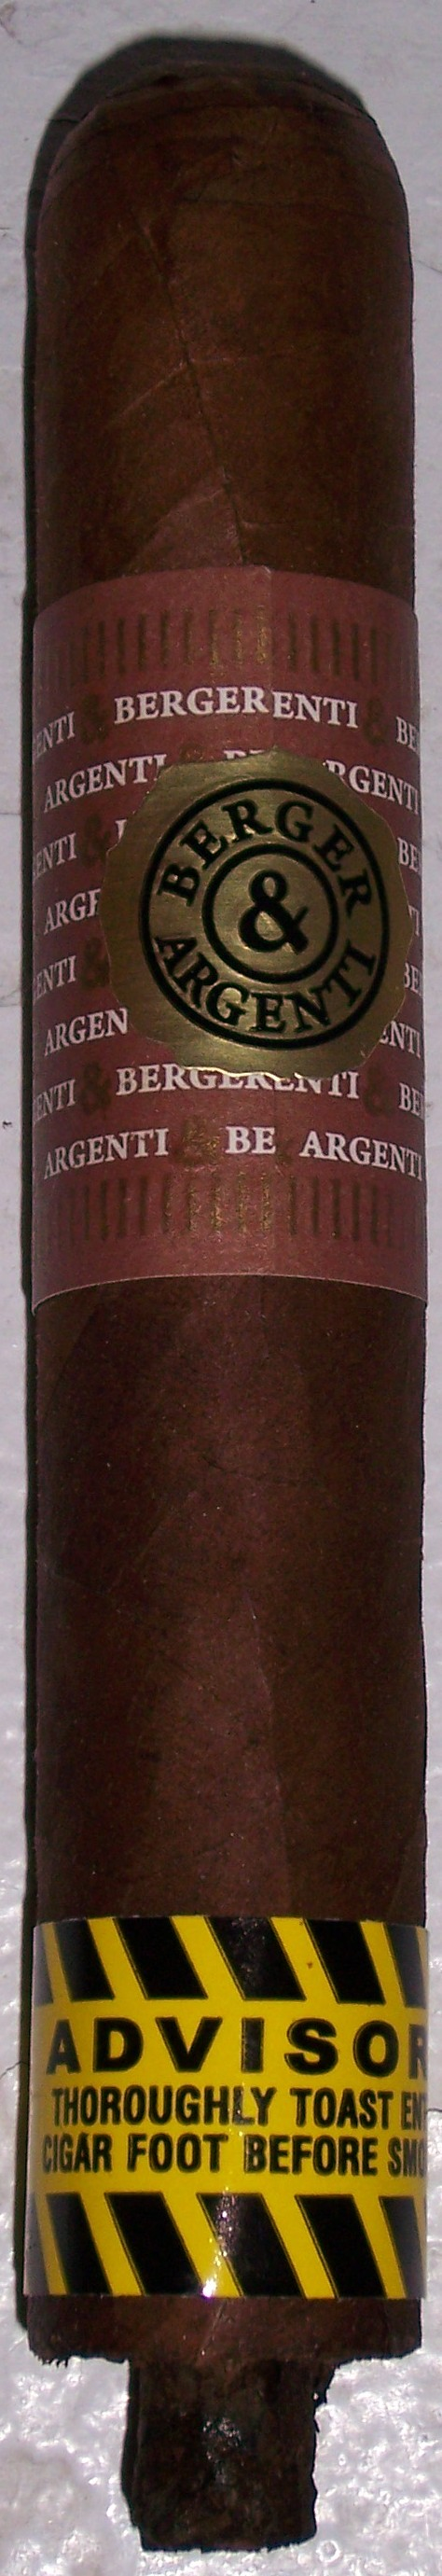 Cigar Review: Berger & Argenti Entubar Robusto